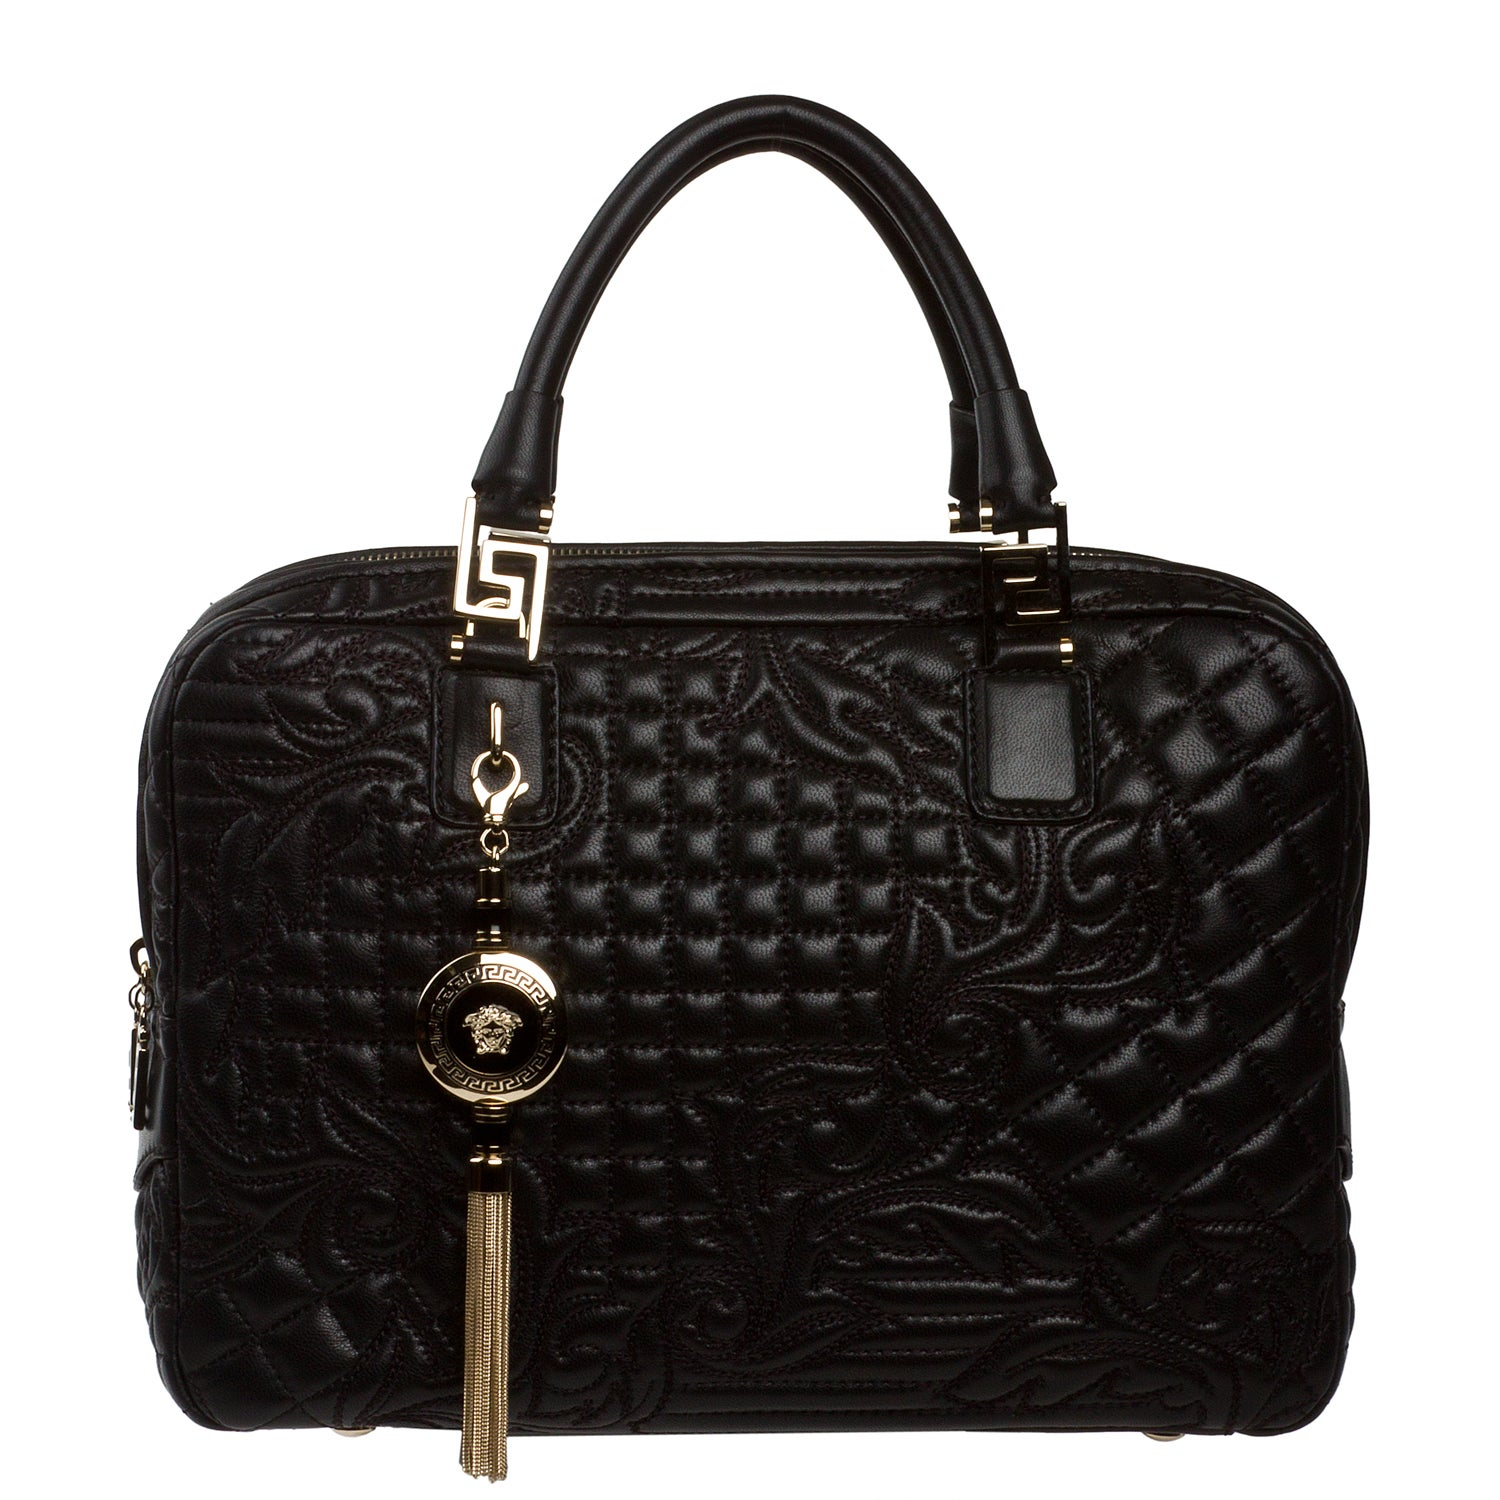 Versace Black Leather Double Zip Satchel